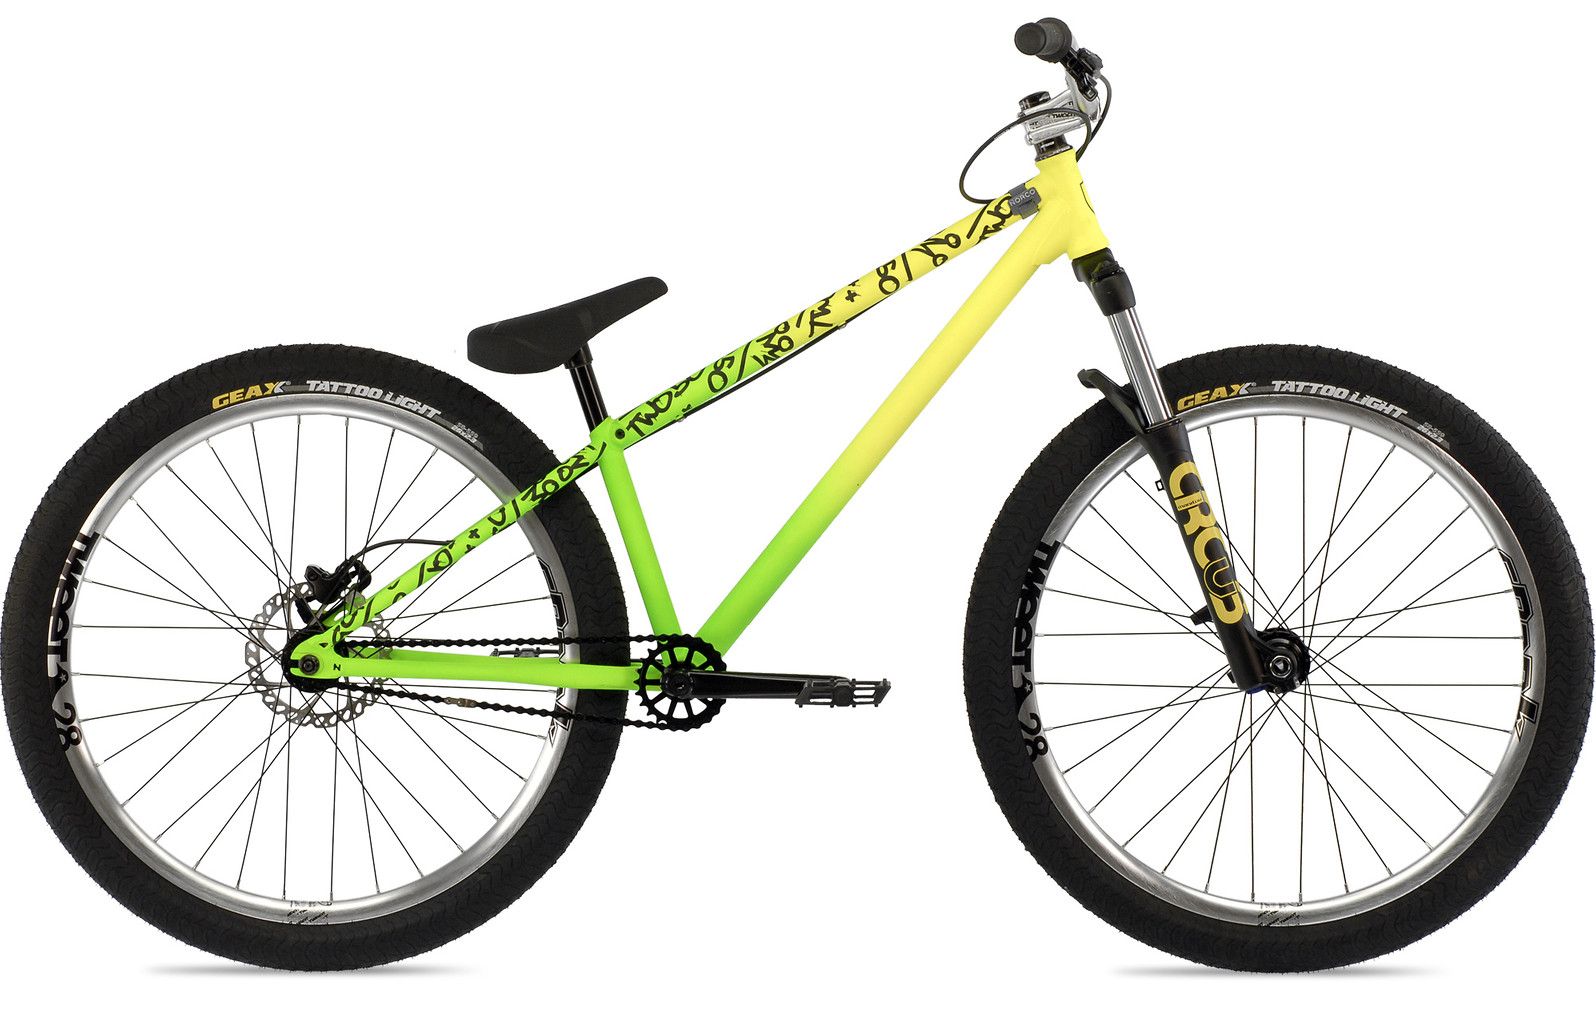 bike - 2014 Norco Two50